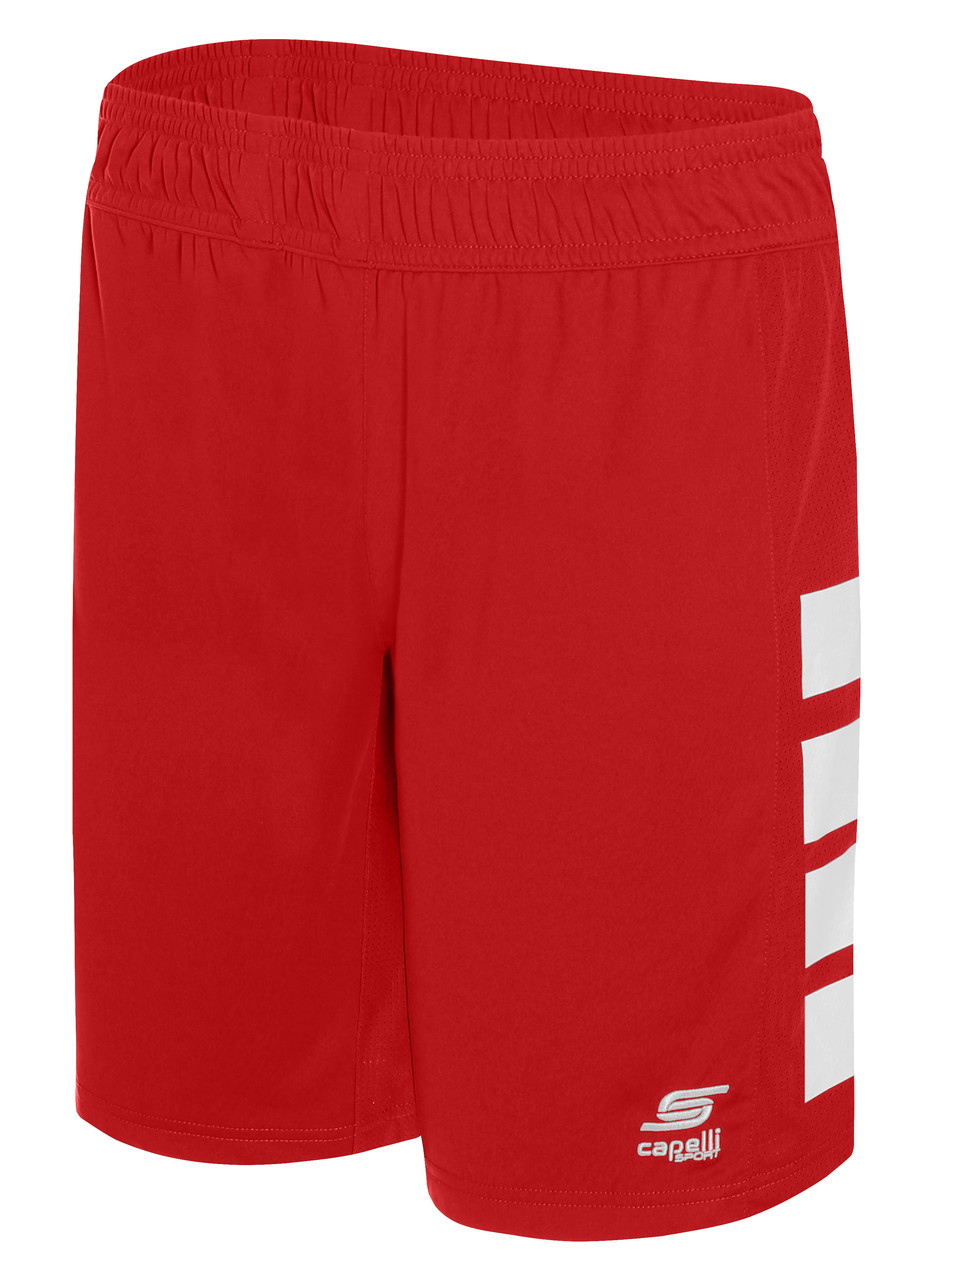 382429879f93 ... PAL CAPELLI SPORT UPTOWN BASKETBALL SHORTS -- RED WHITE ( 12 -  13.5).  Image 1